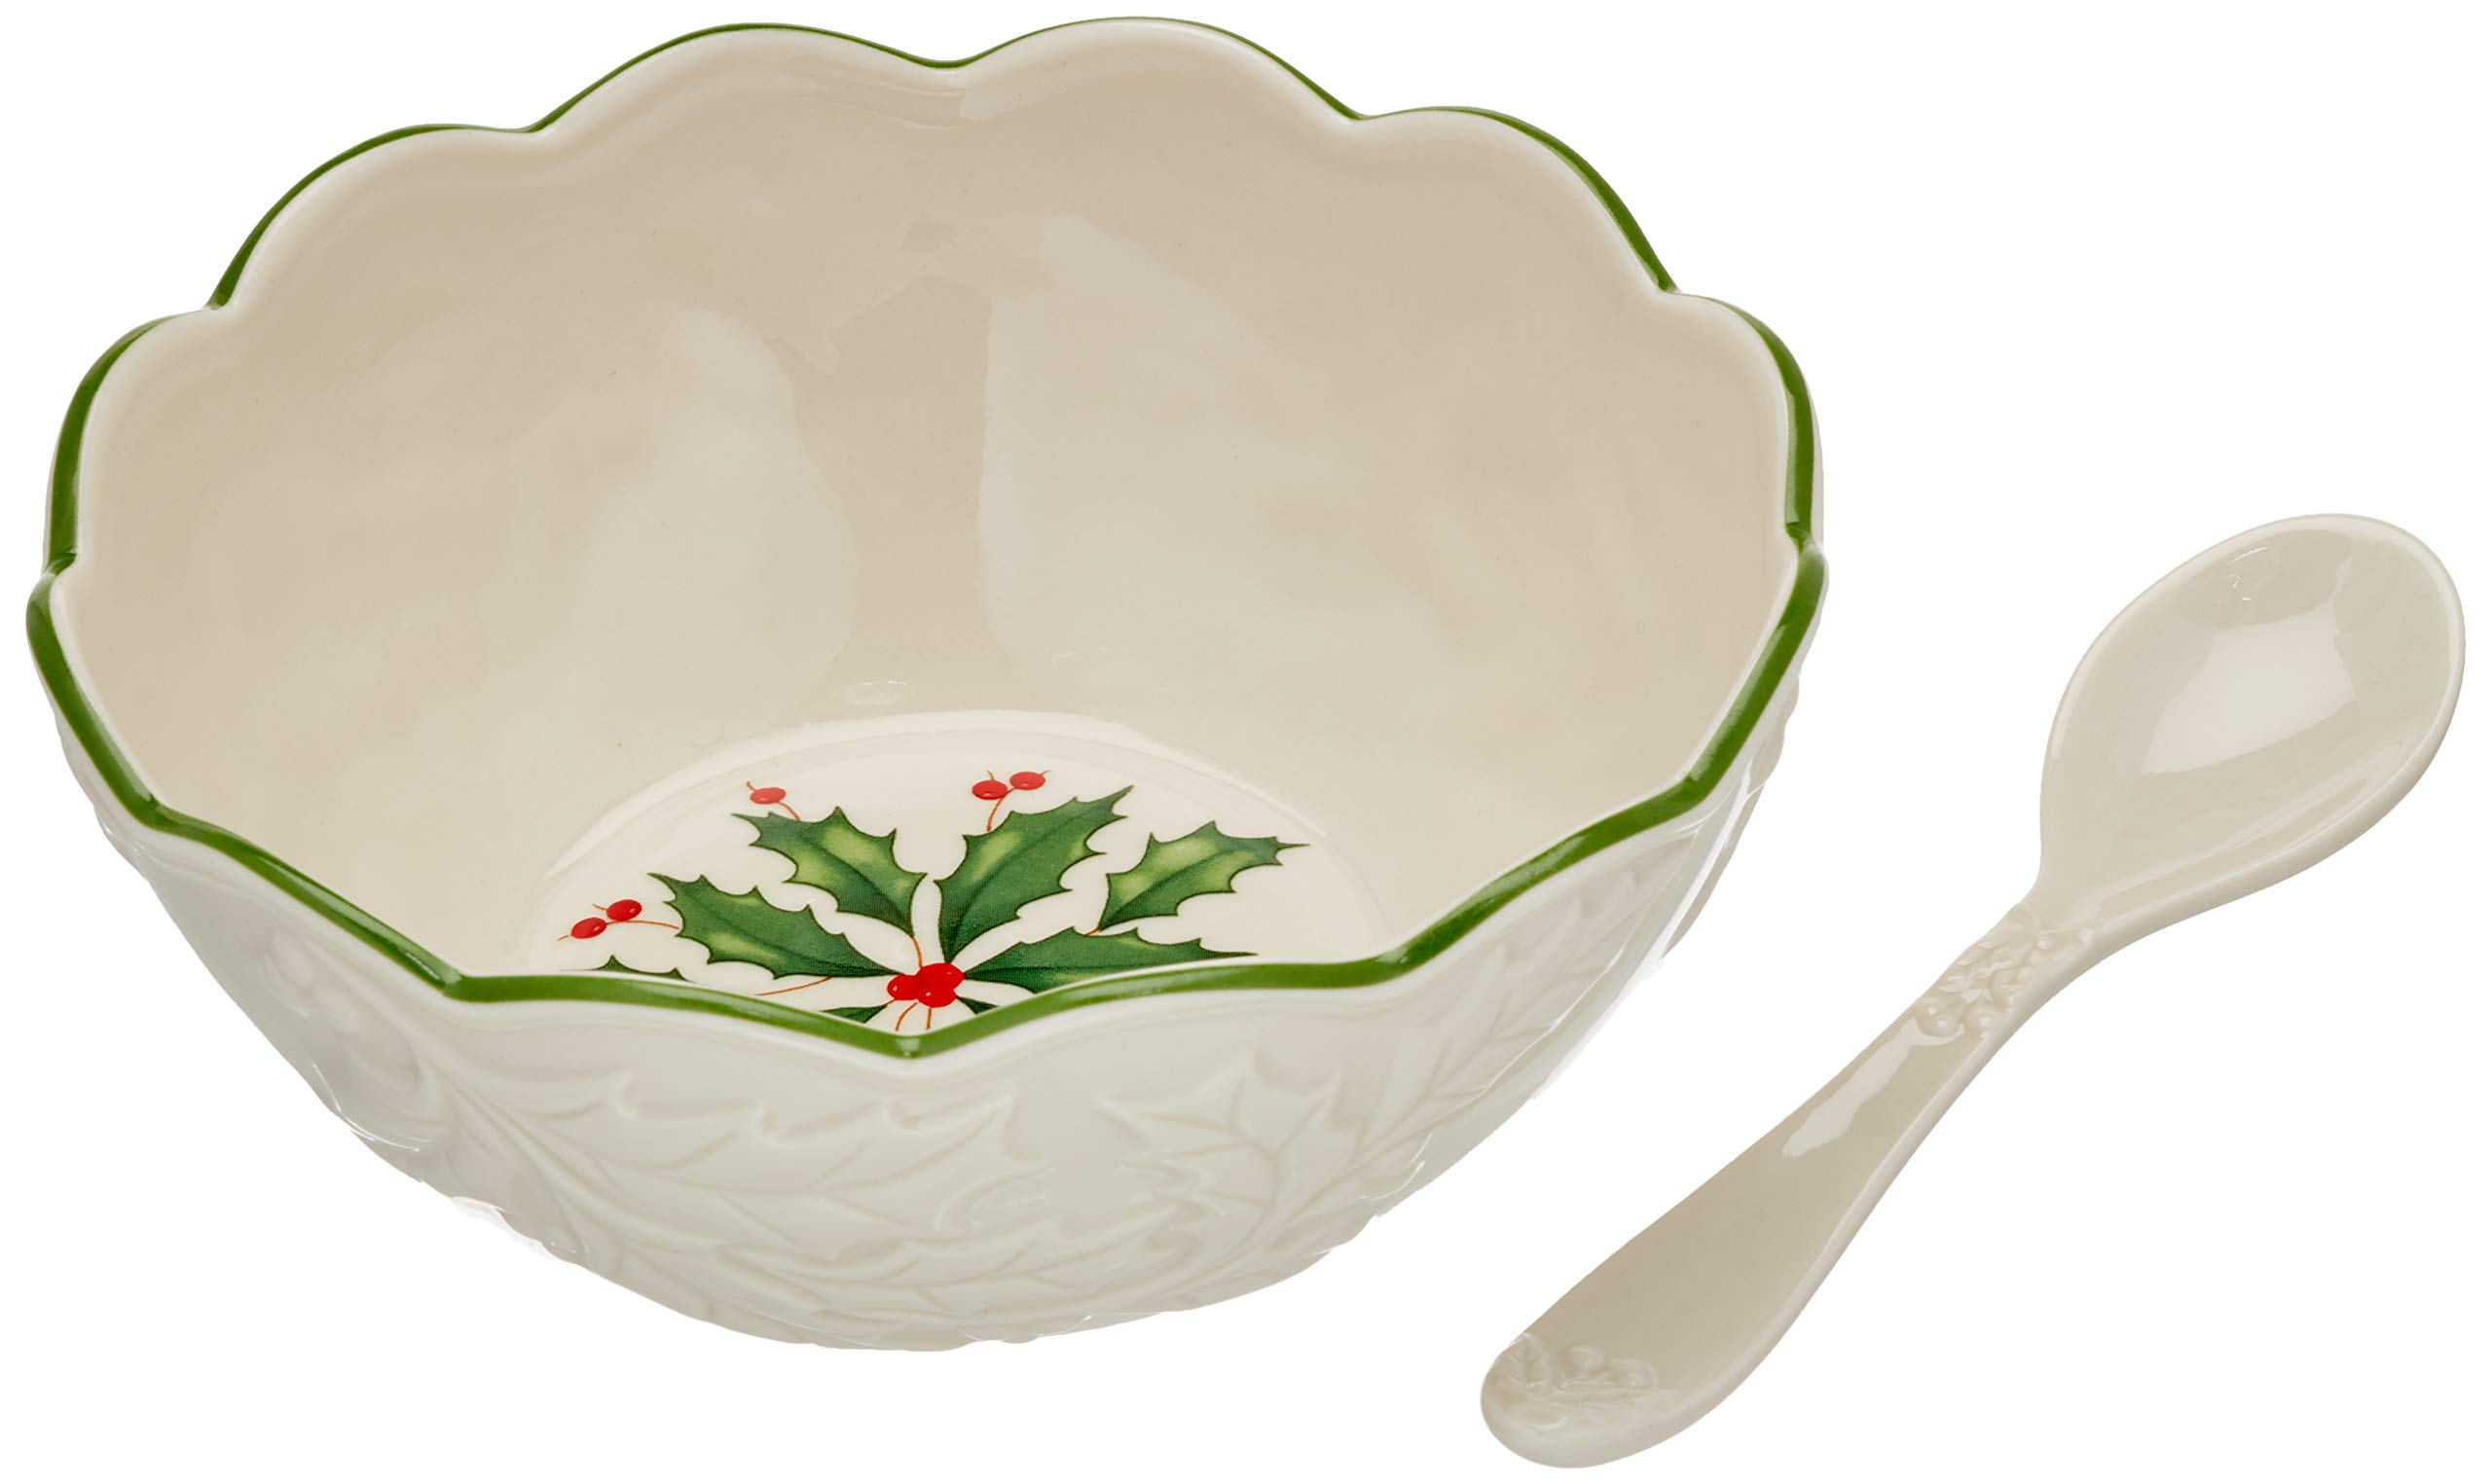 Lenox 882773 Holiday Dip Bowl with Spoon